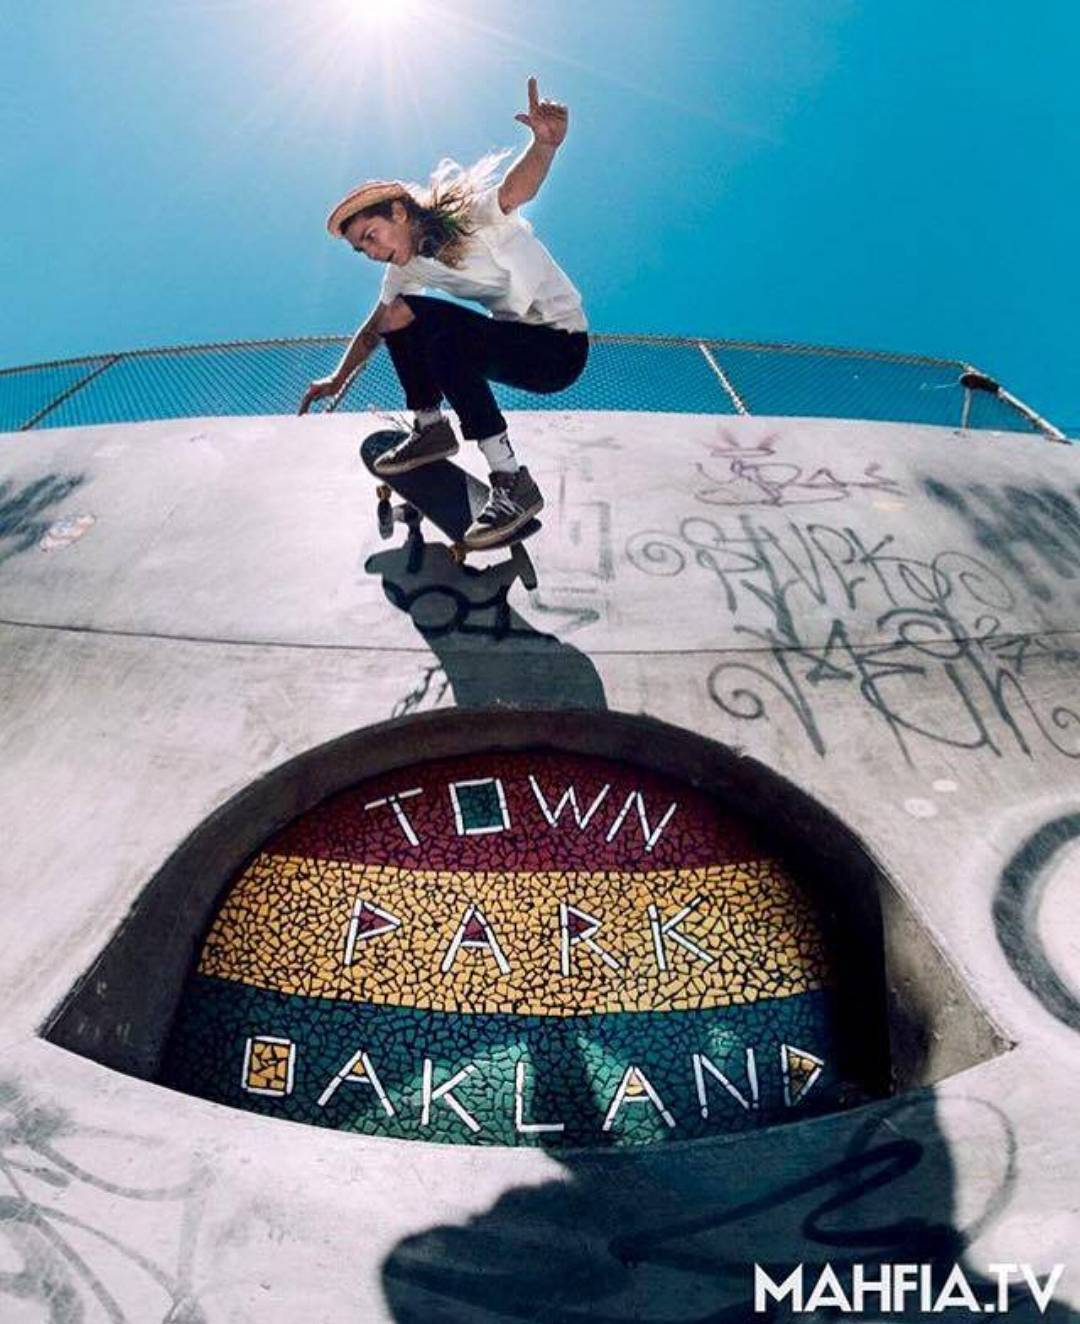 We are loving this shot of @chloyeahbernard_suzzies from the Oakland Girls Skate Session! Repost from @mahfia_tv :: photo by @zoraholivia